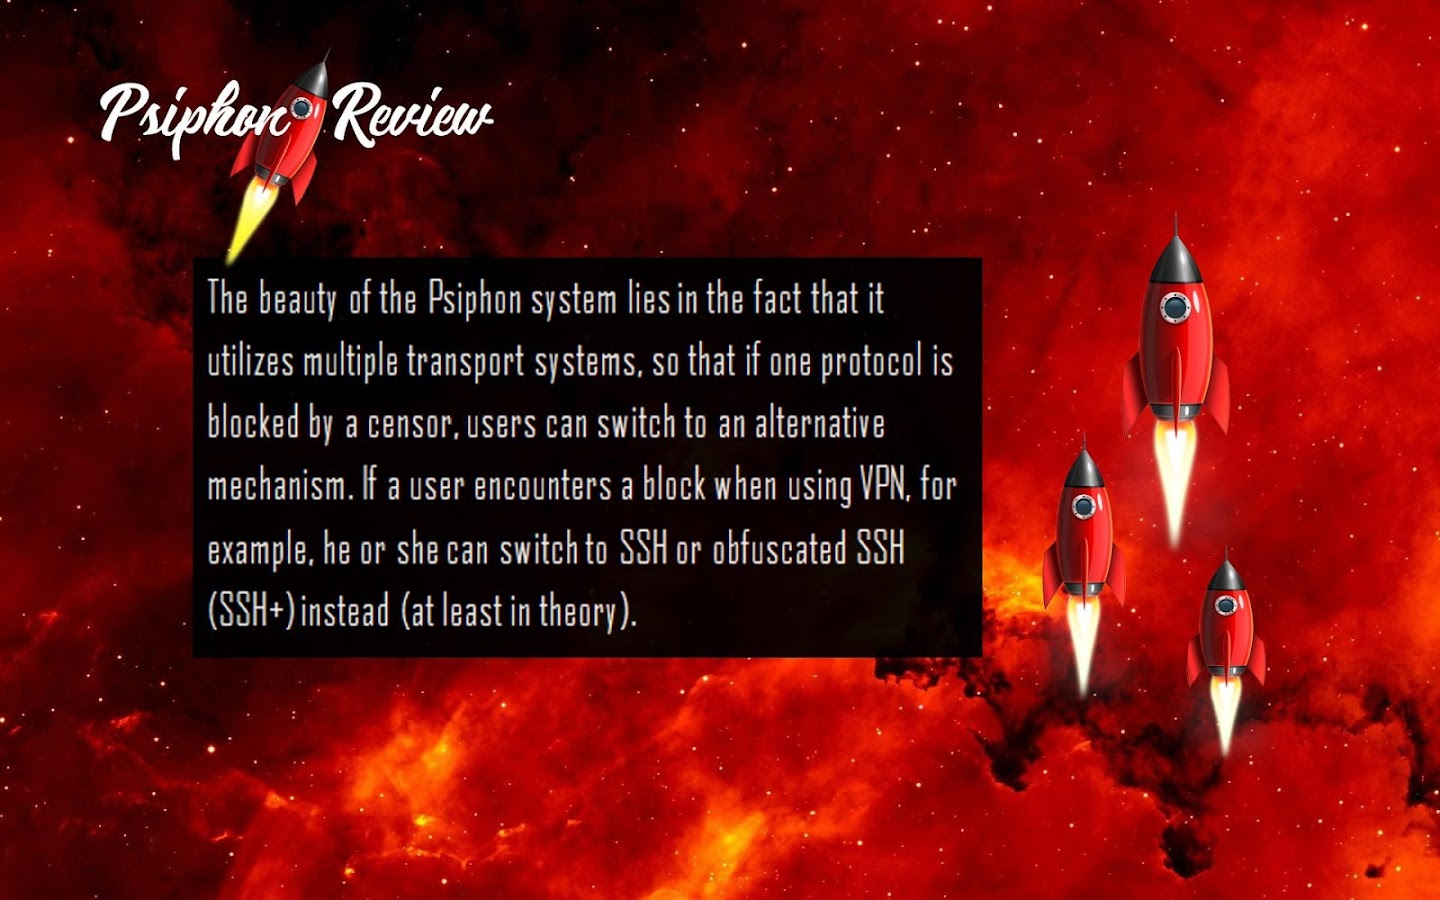 New free psiphon 3 review screenshot